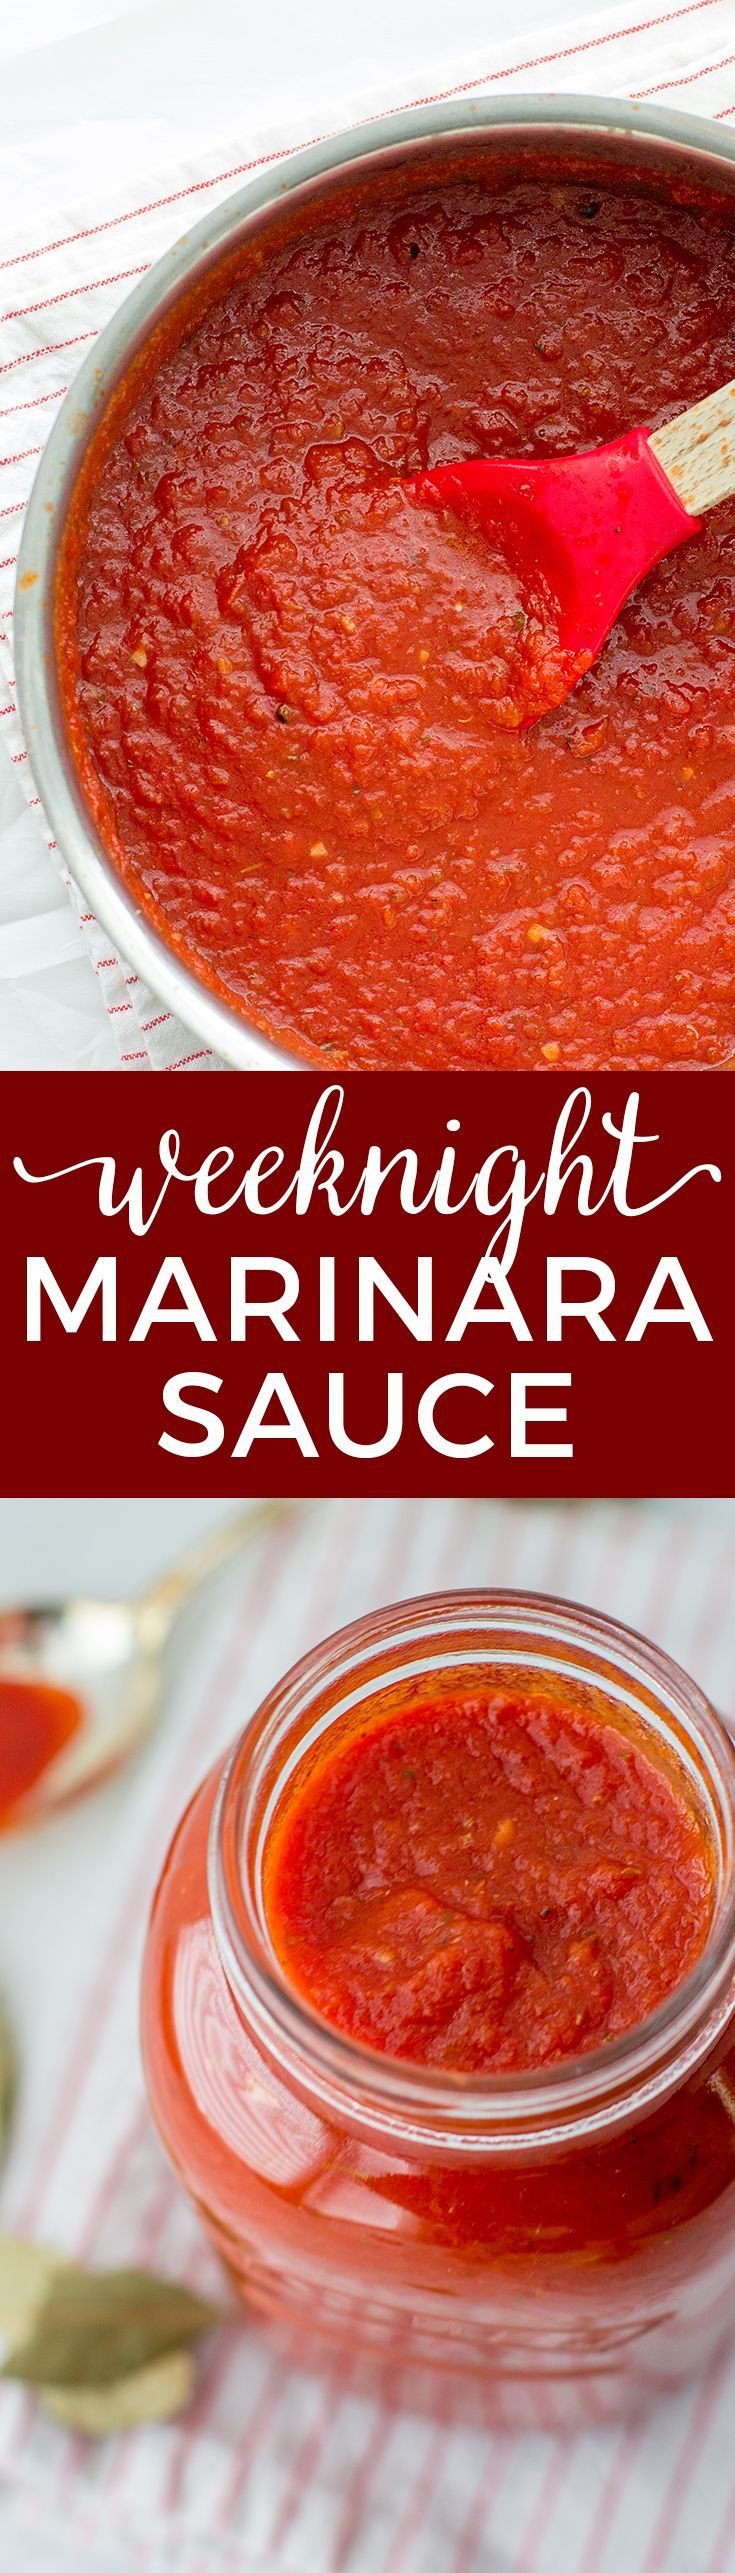 Simple weeknight marinara sauce is a quick dinner hero. Perfect for pizza, pasta, and more! via @nourishandfete